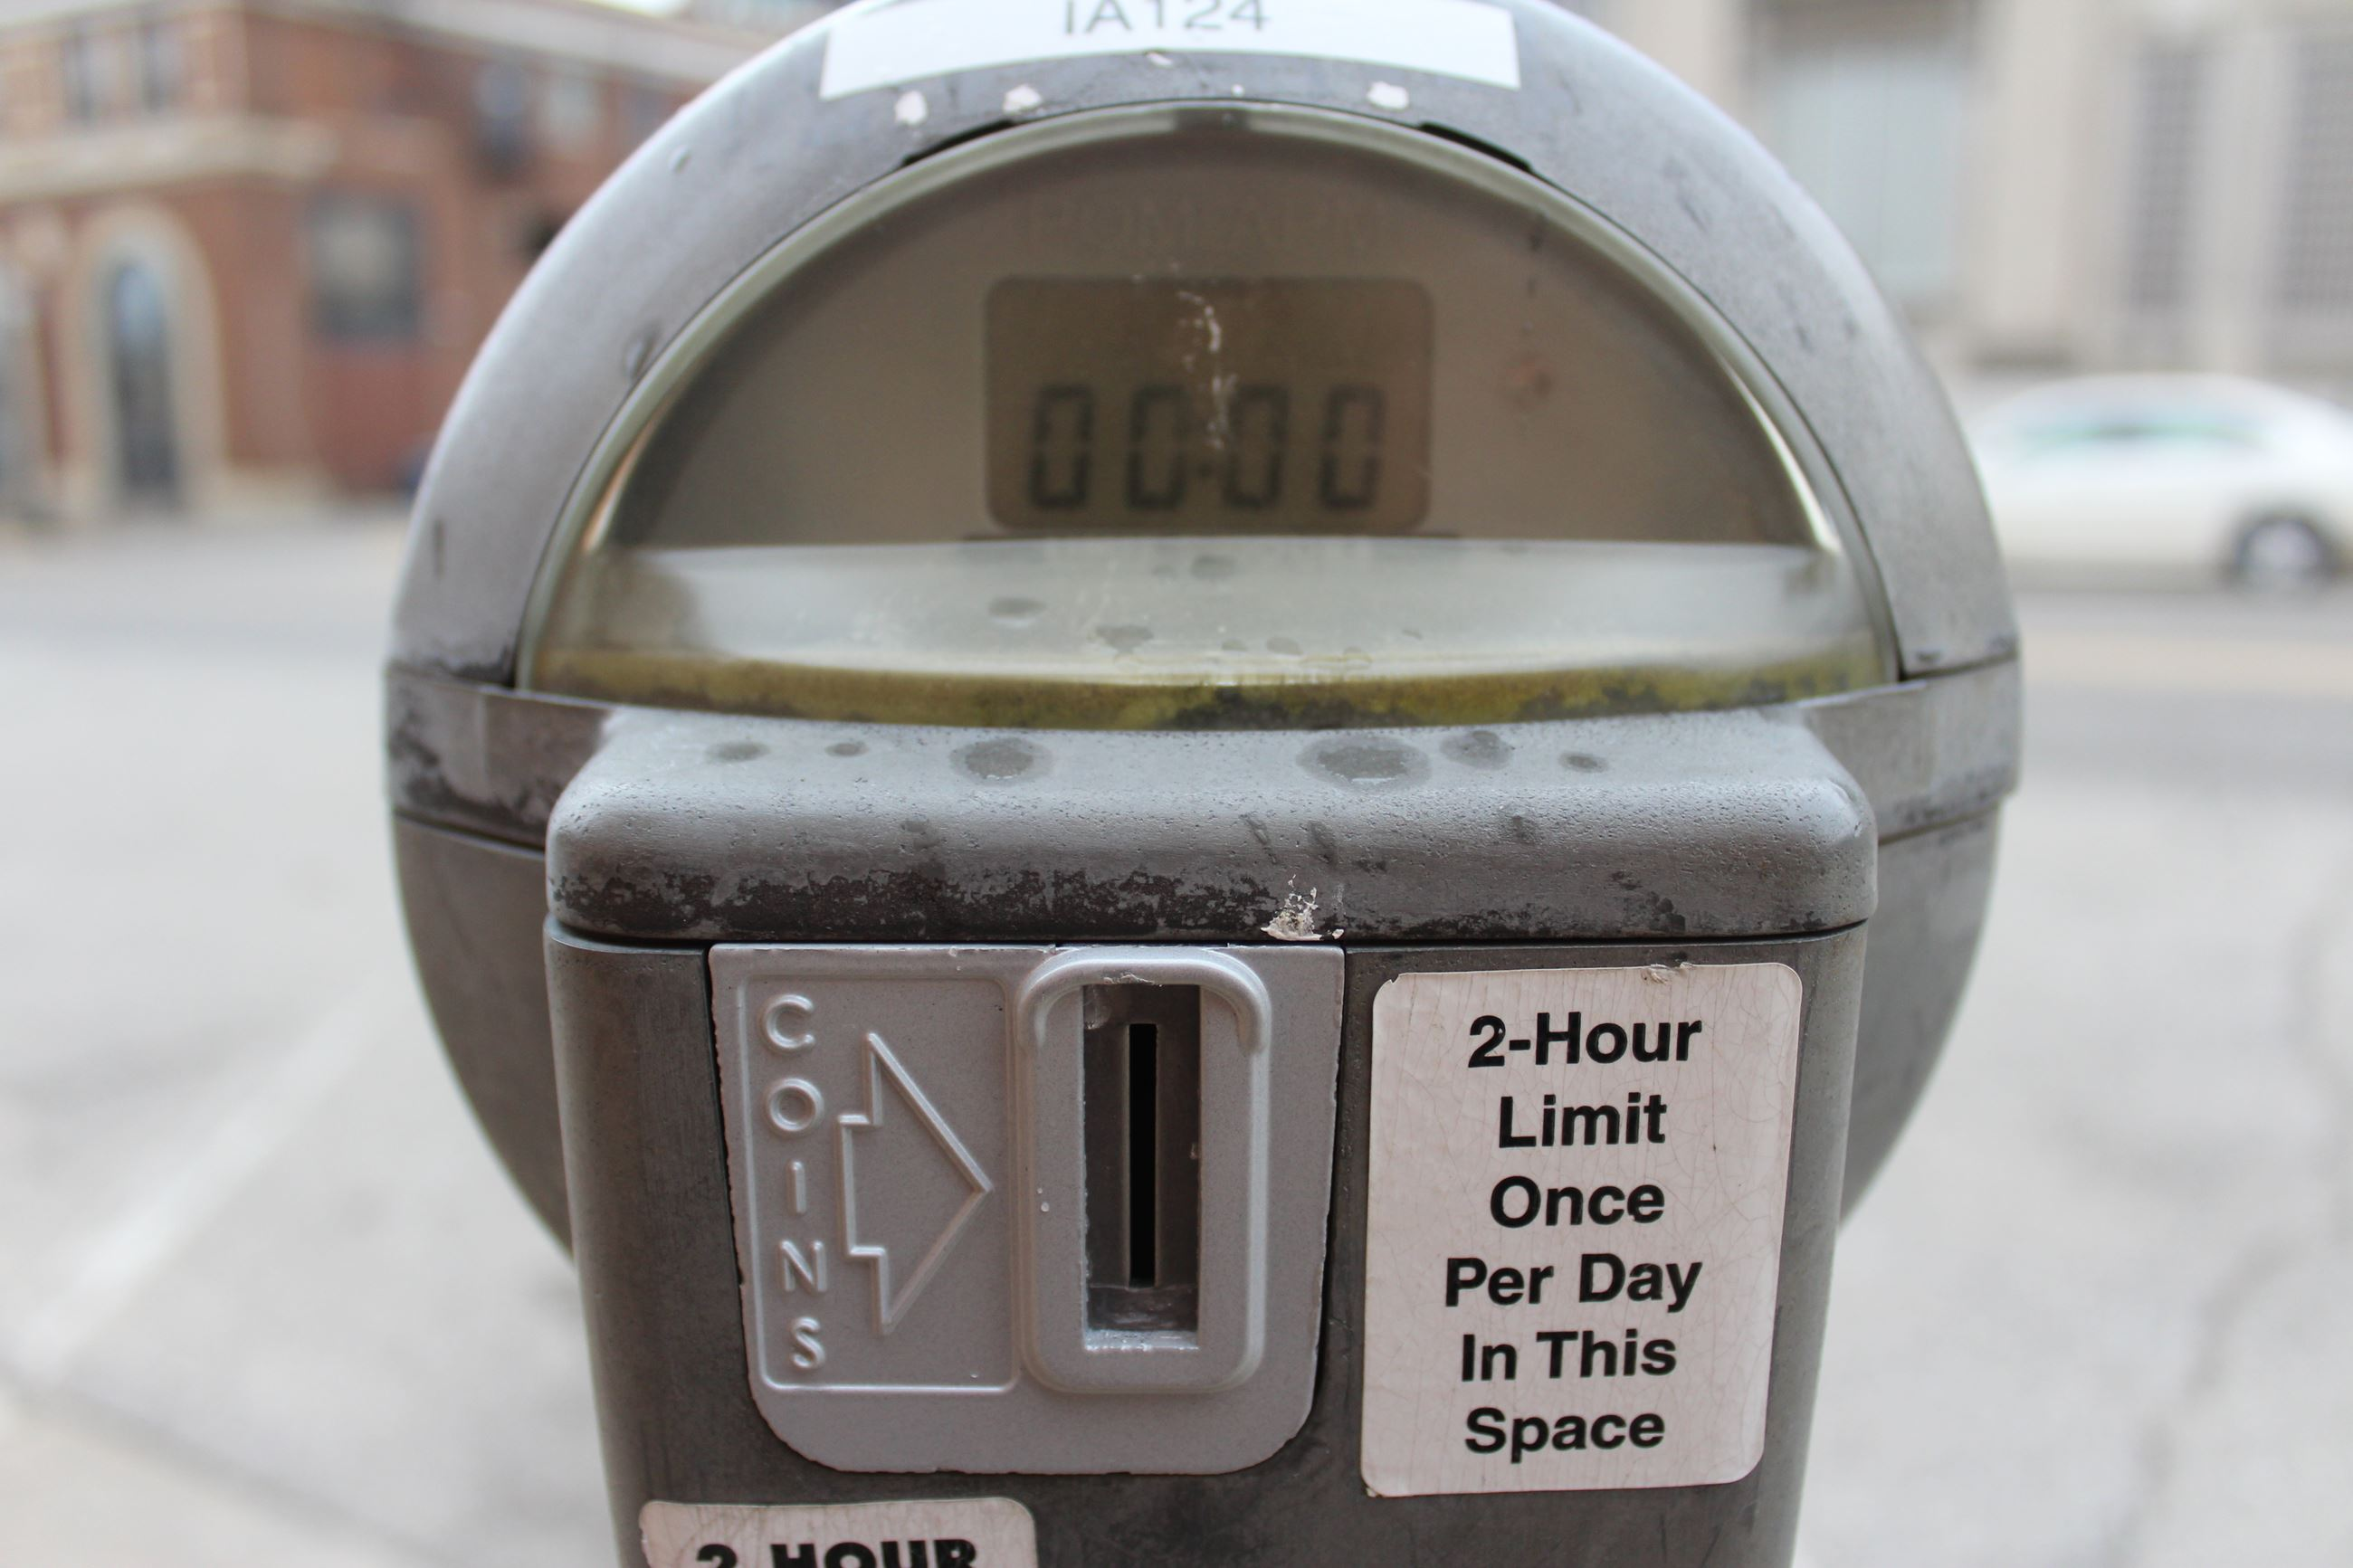 032620 Parking Meter closeup (JPG)